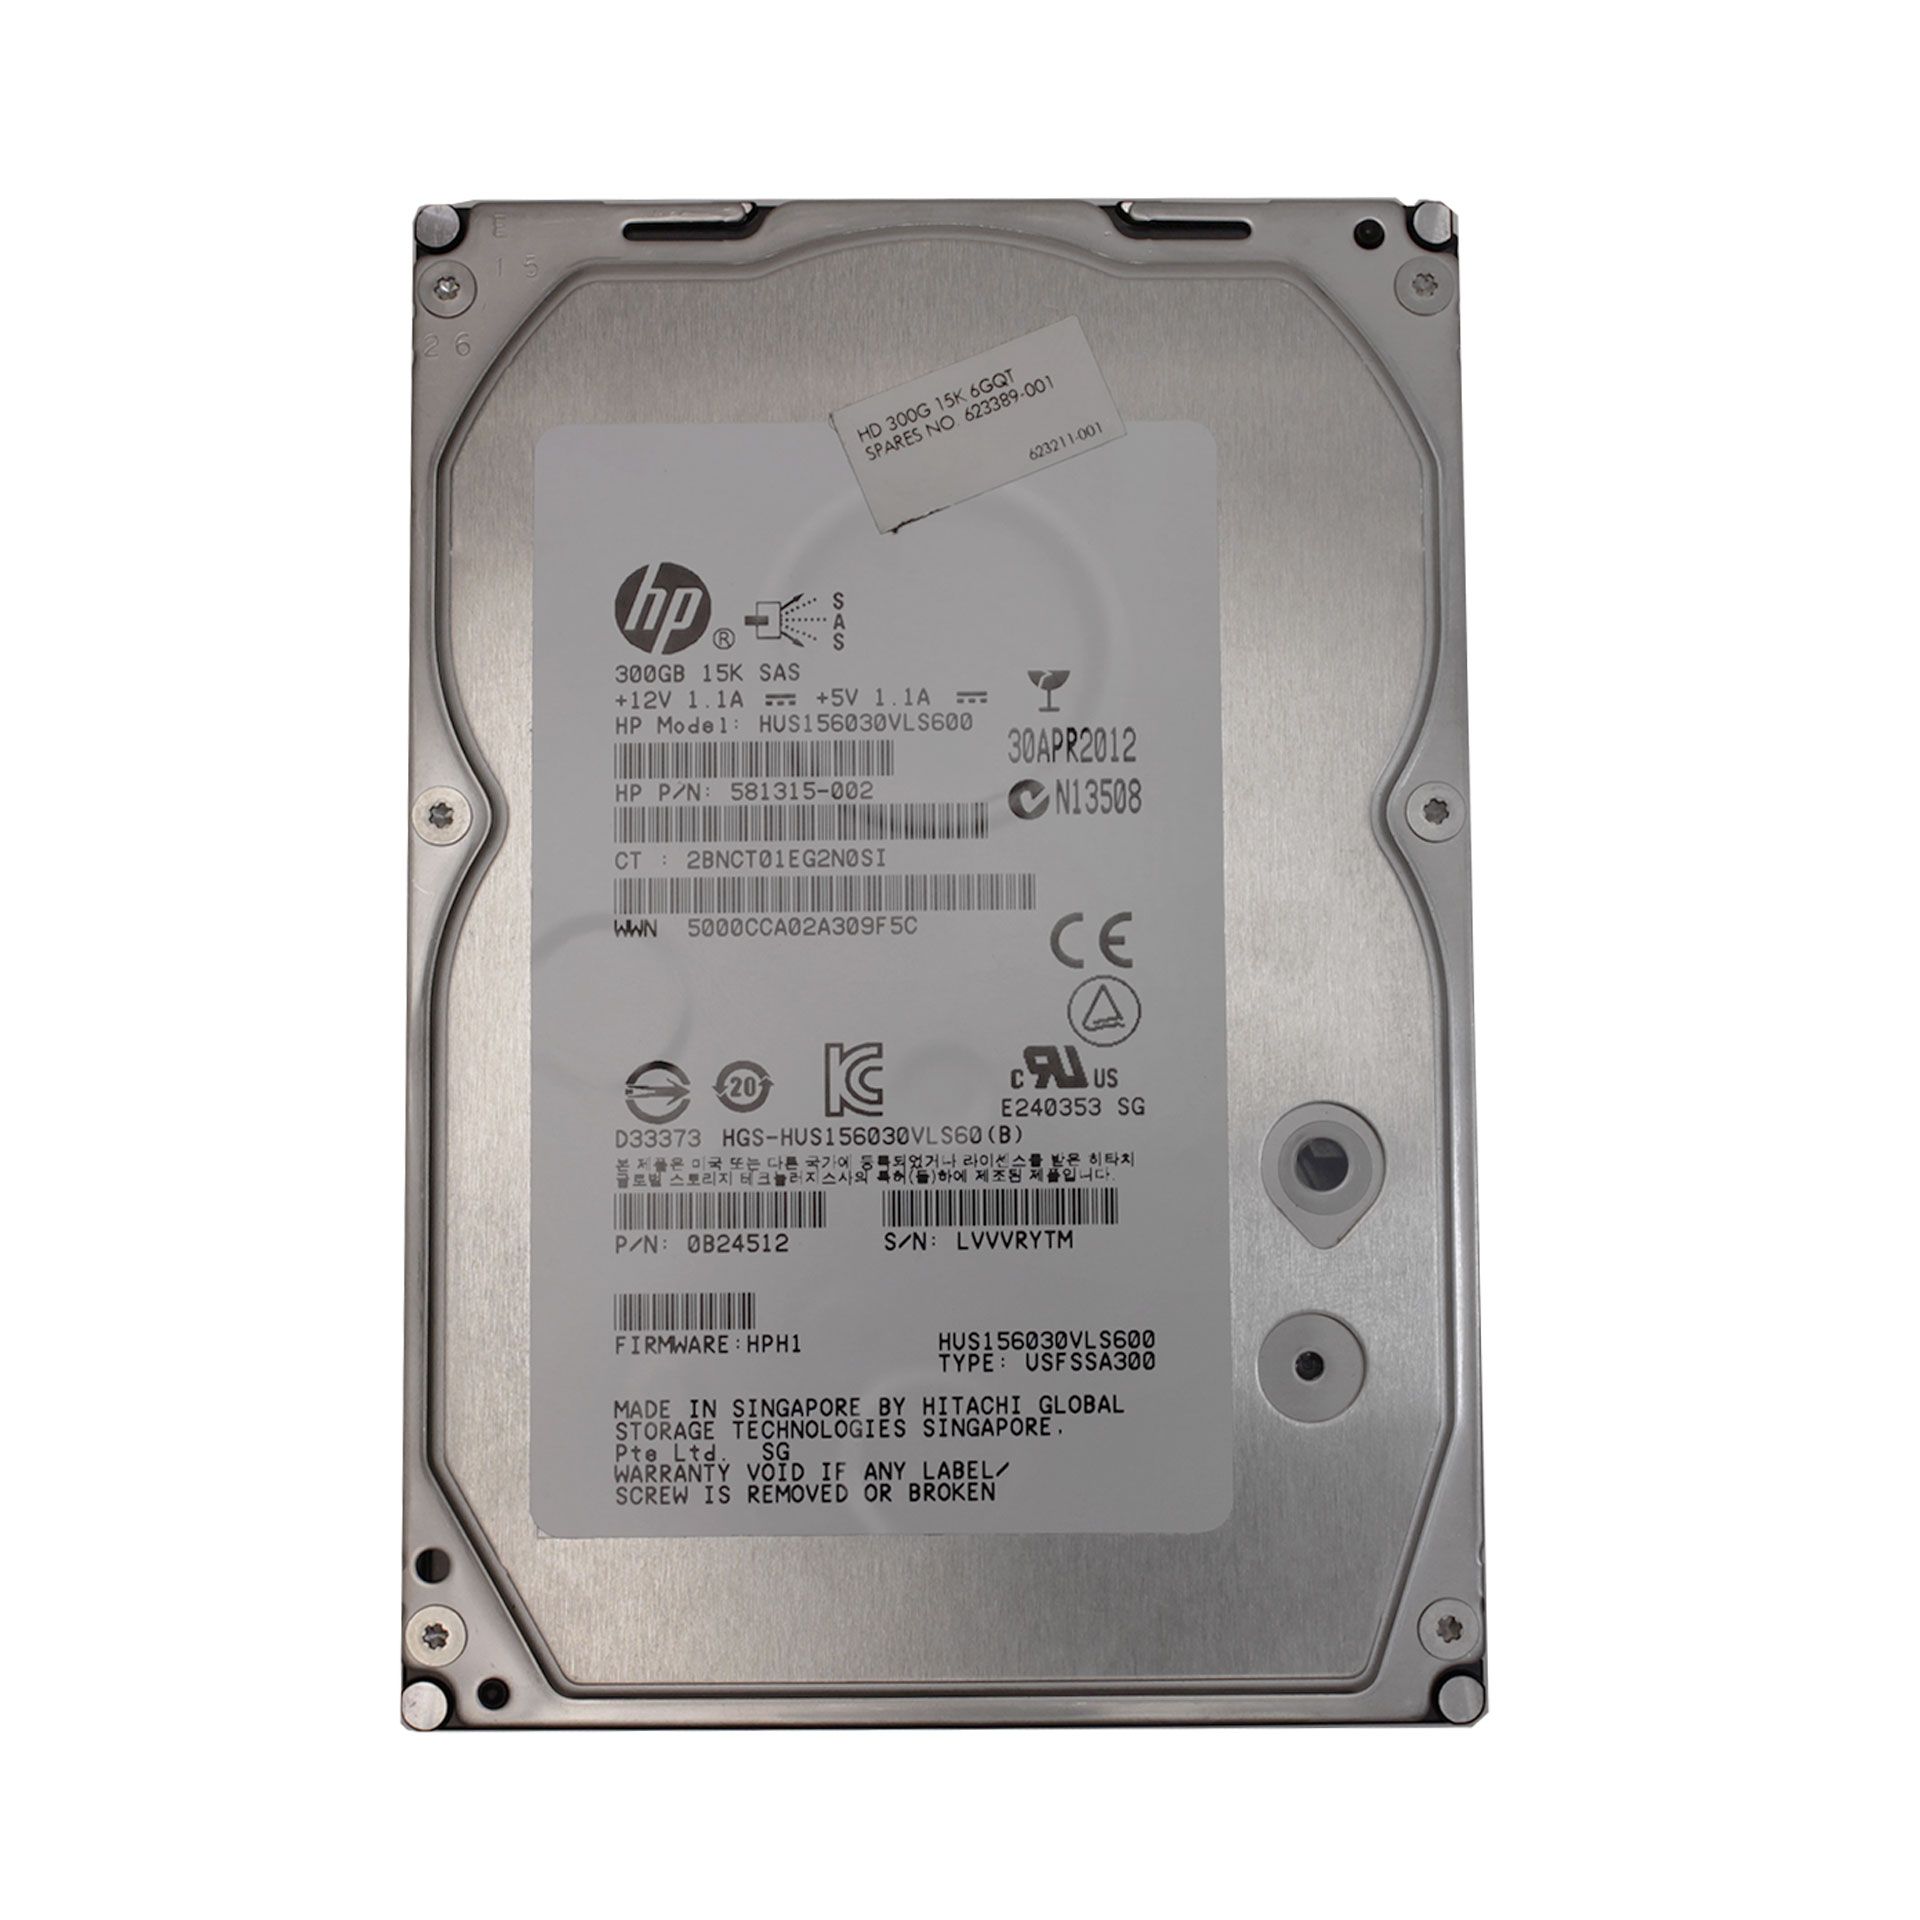 HP/Hitachi 300GB HUS156030VLS600 15K SAS 581315-002 623389-001